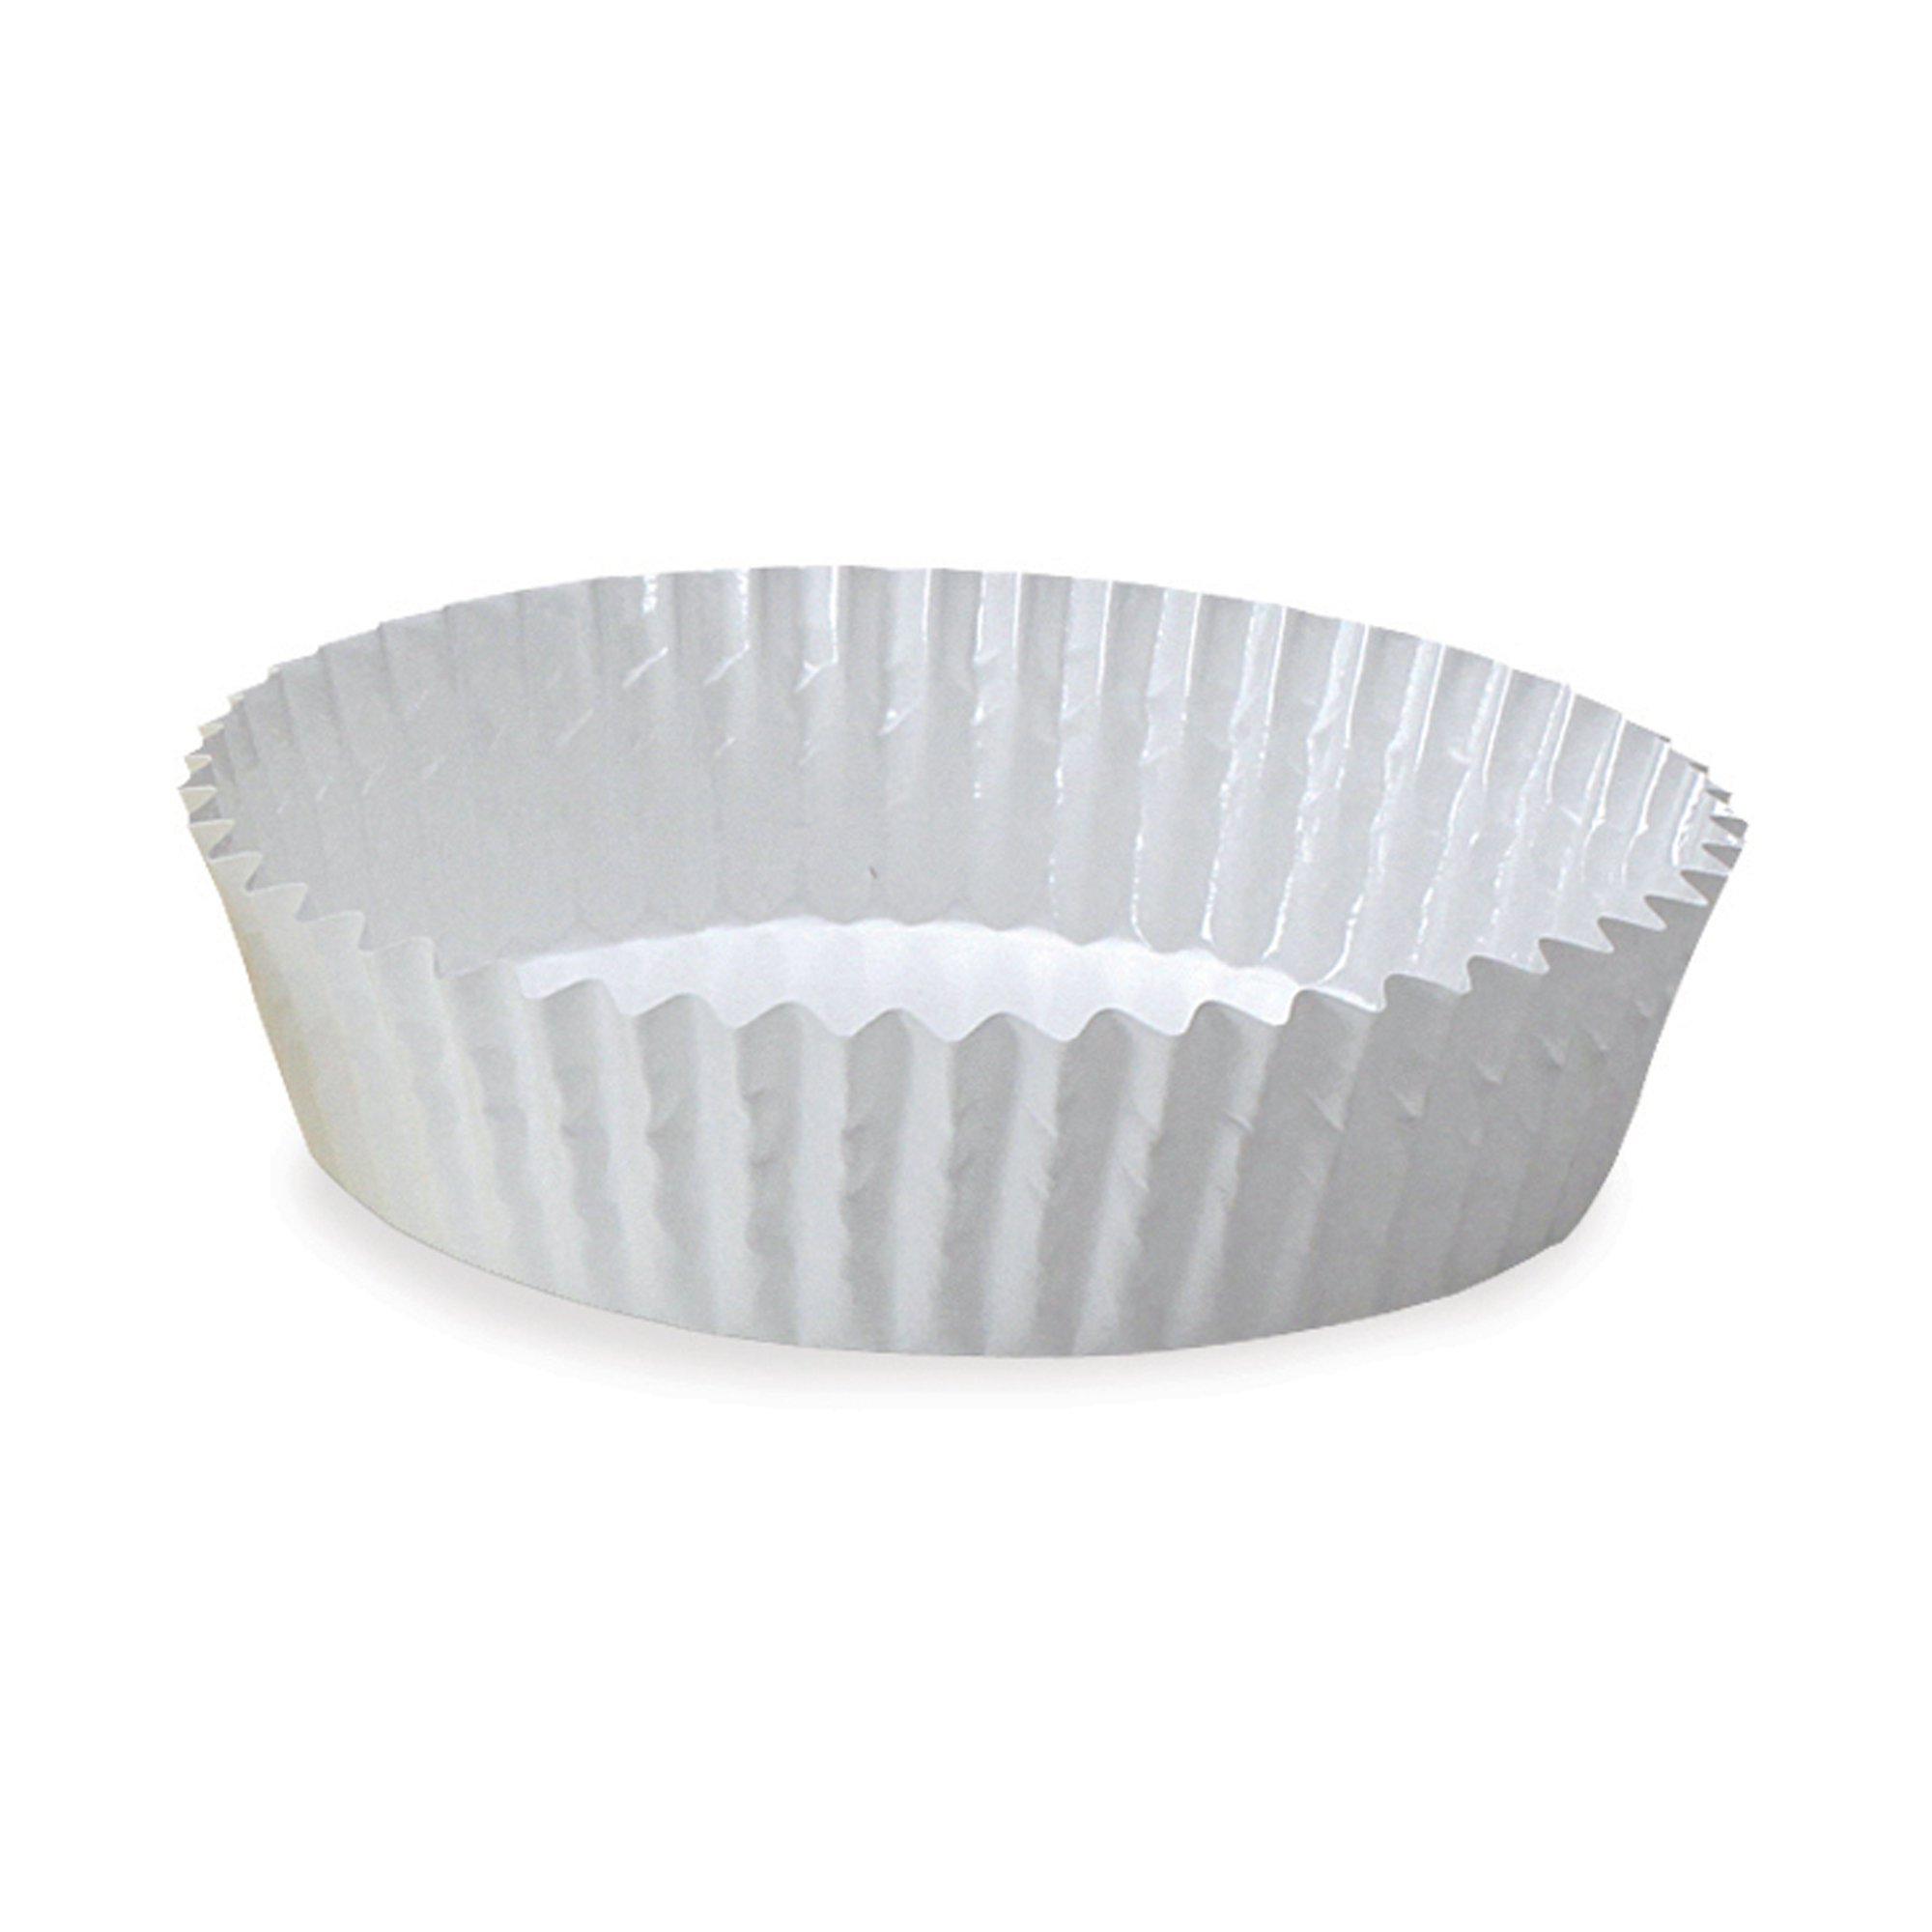 Welcome Home Brands Ruffled Baking Cups, Baker's White, 3.9''d x 1.2''h, Case/4500